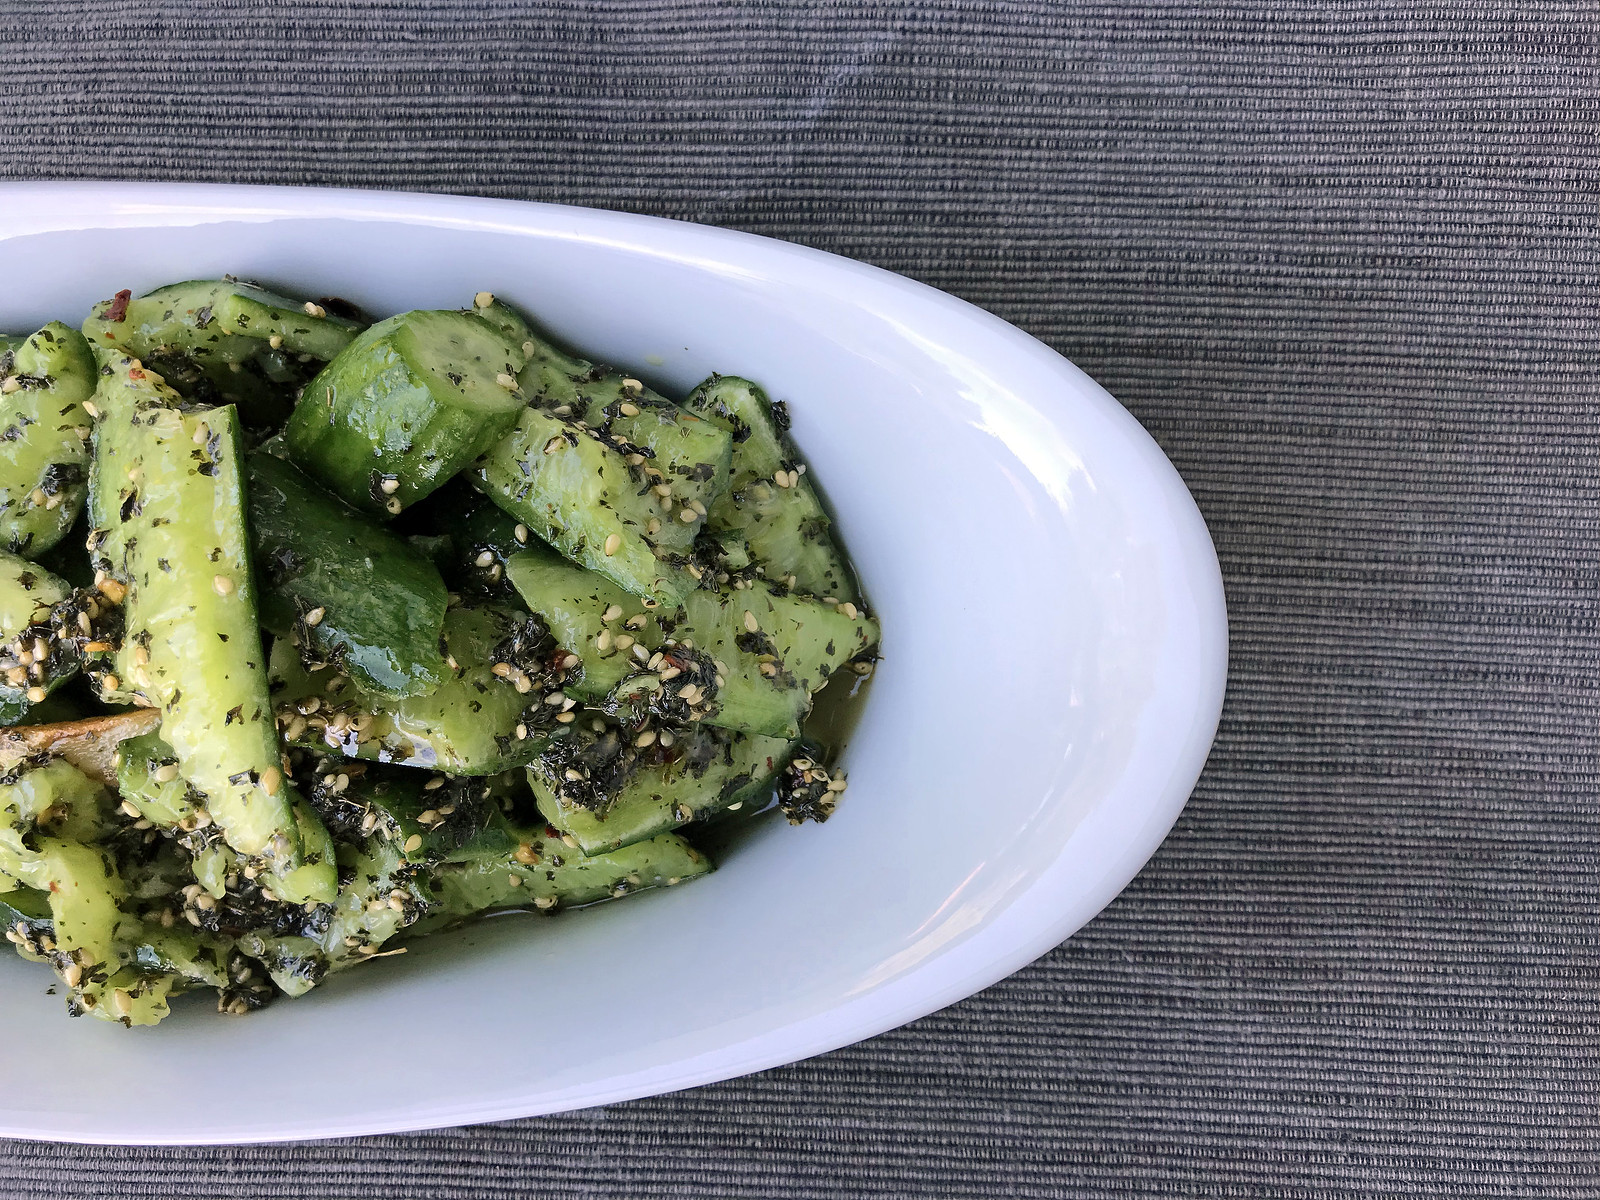 Smashed cucumber salad with dried mint